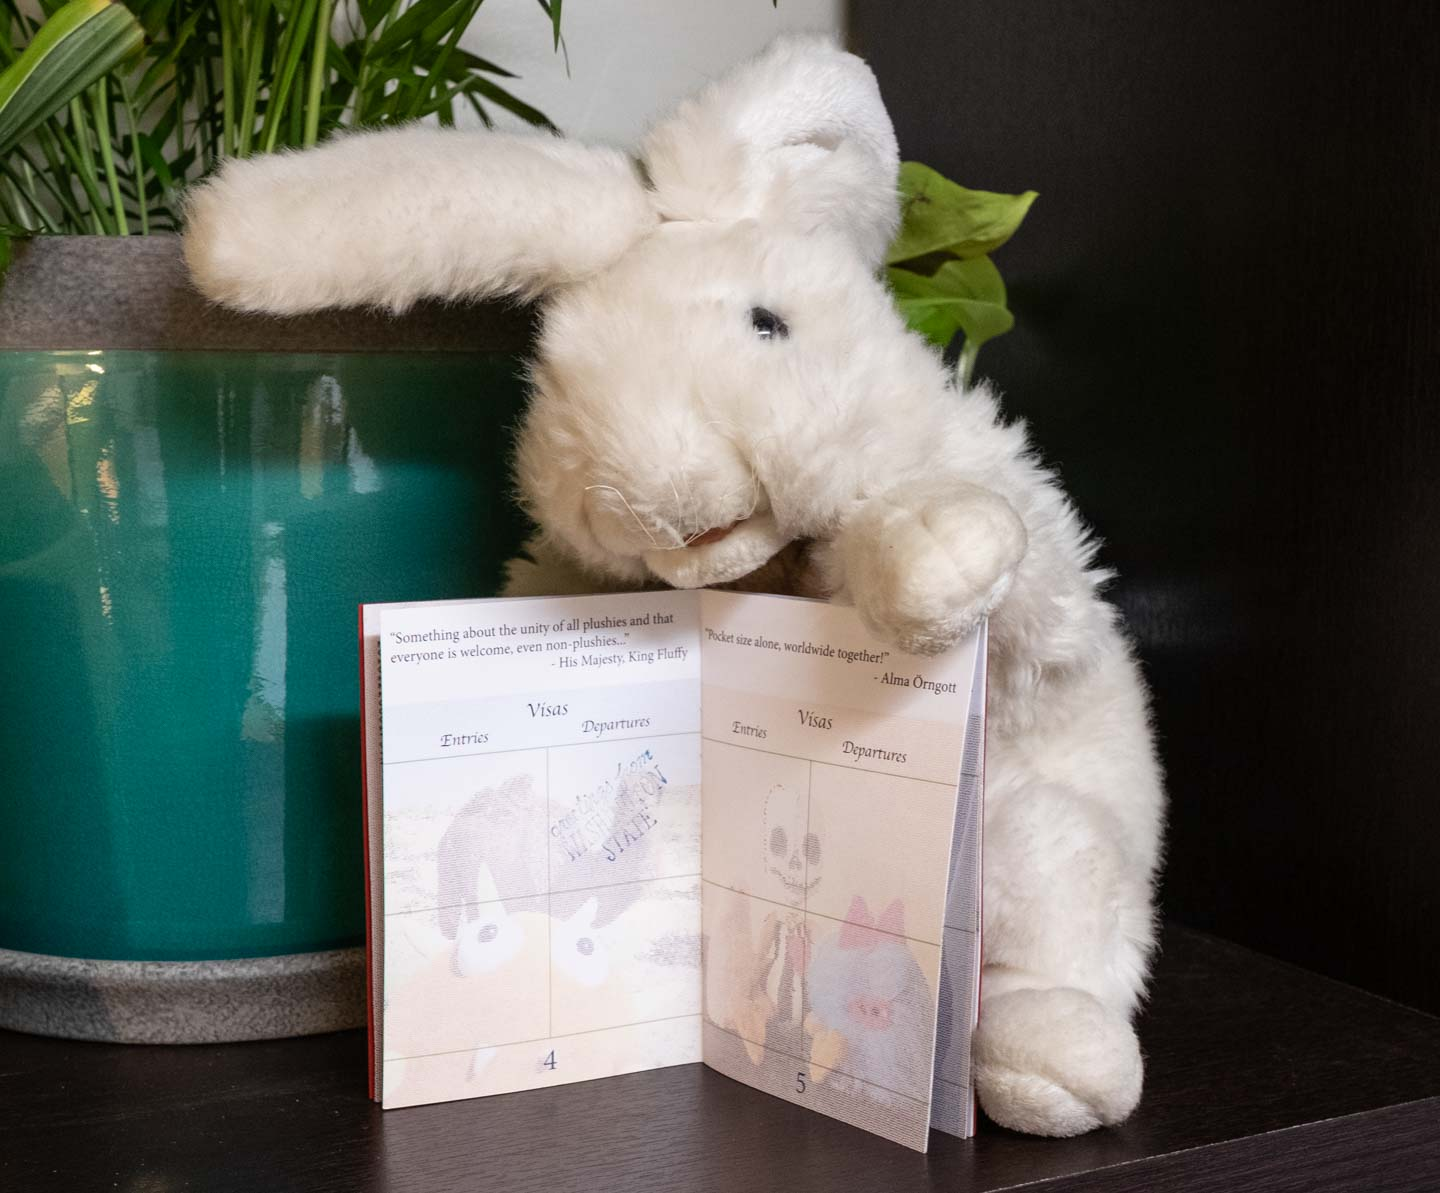 Toy stuffed animal passport with spaces for stamps